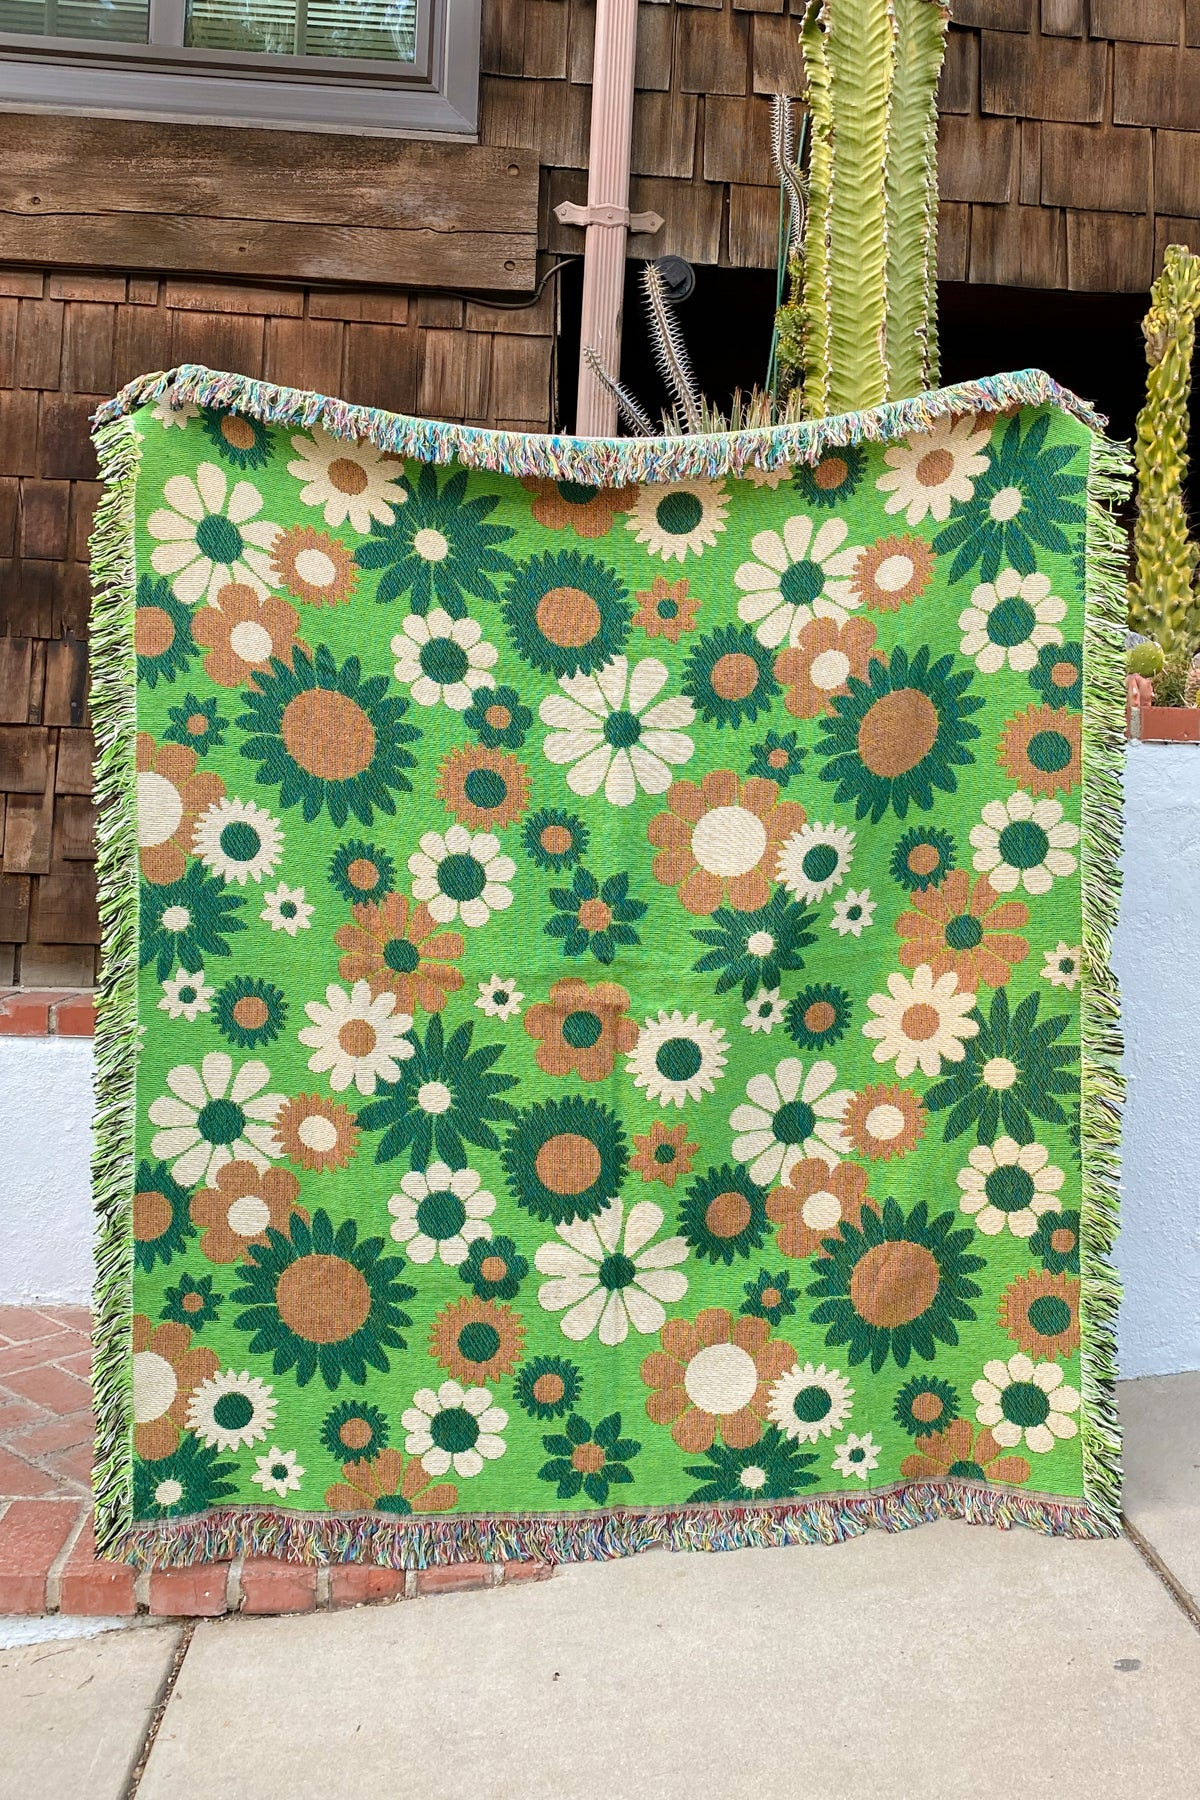 Green Daisy Woven Throw Blanket